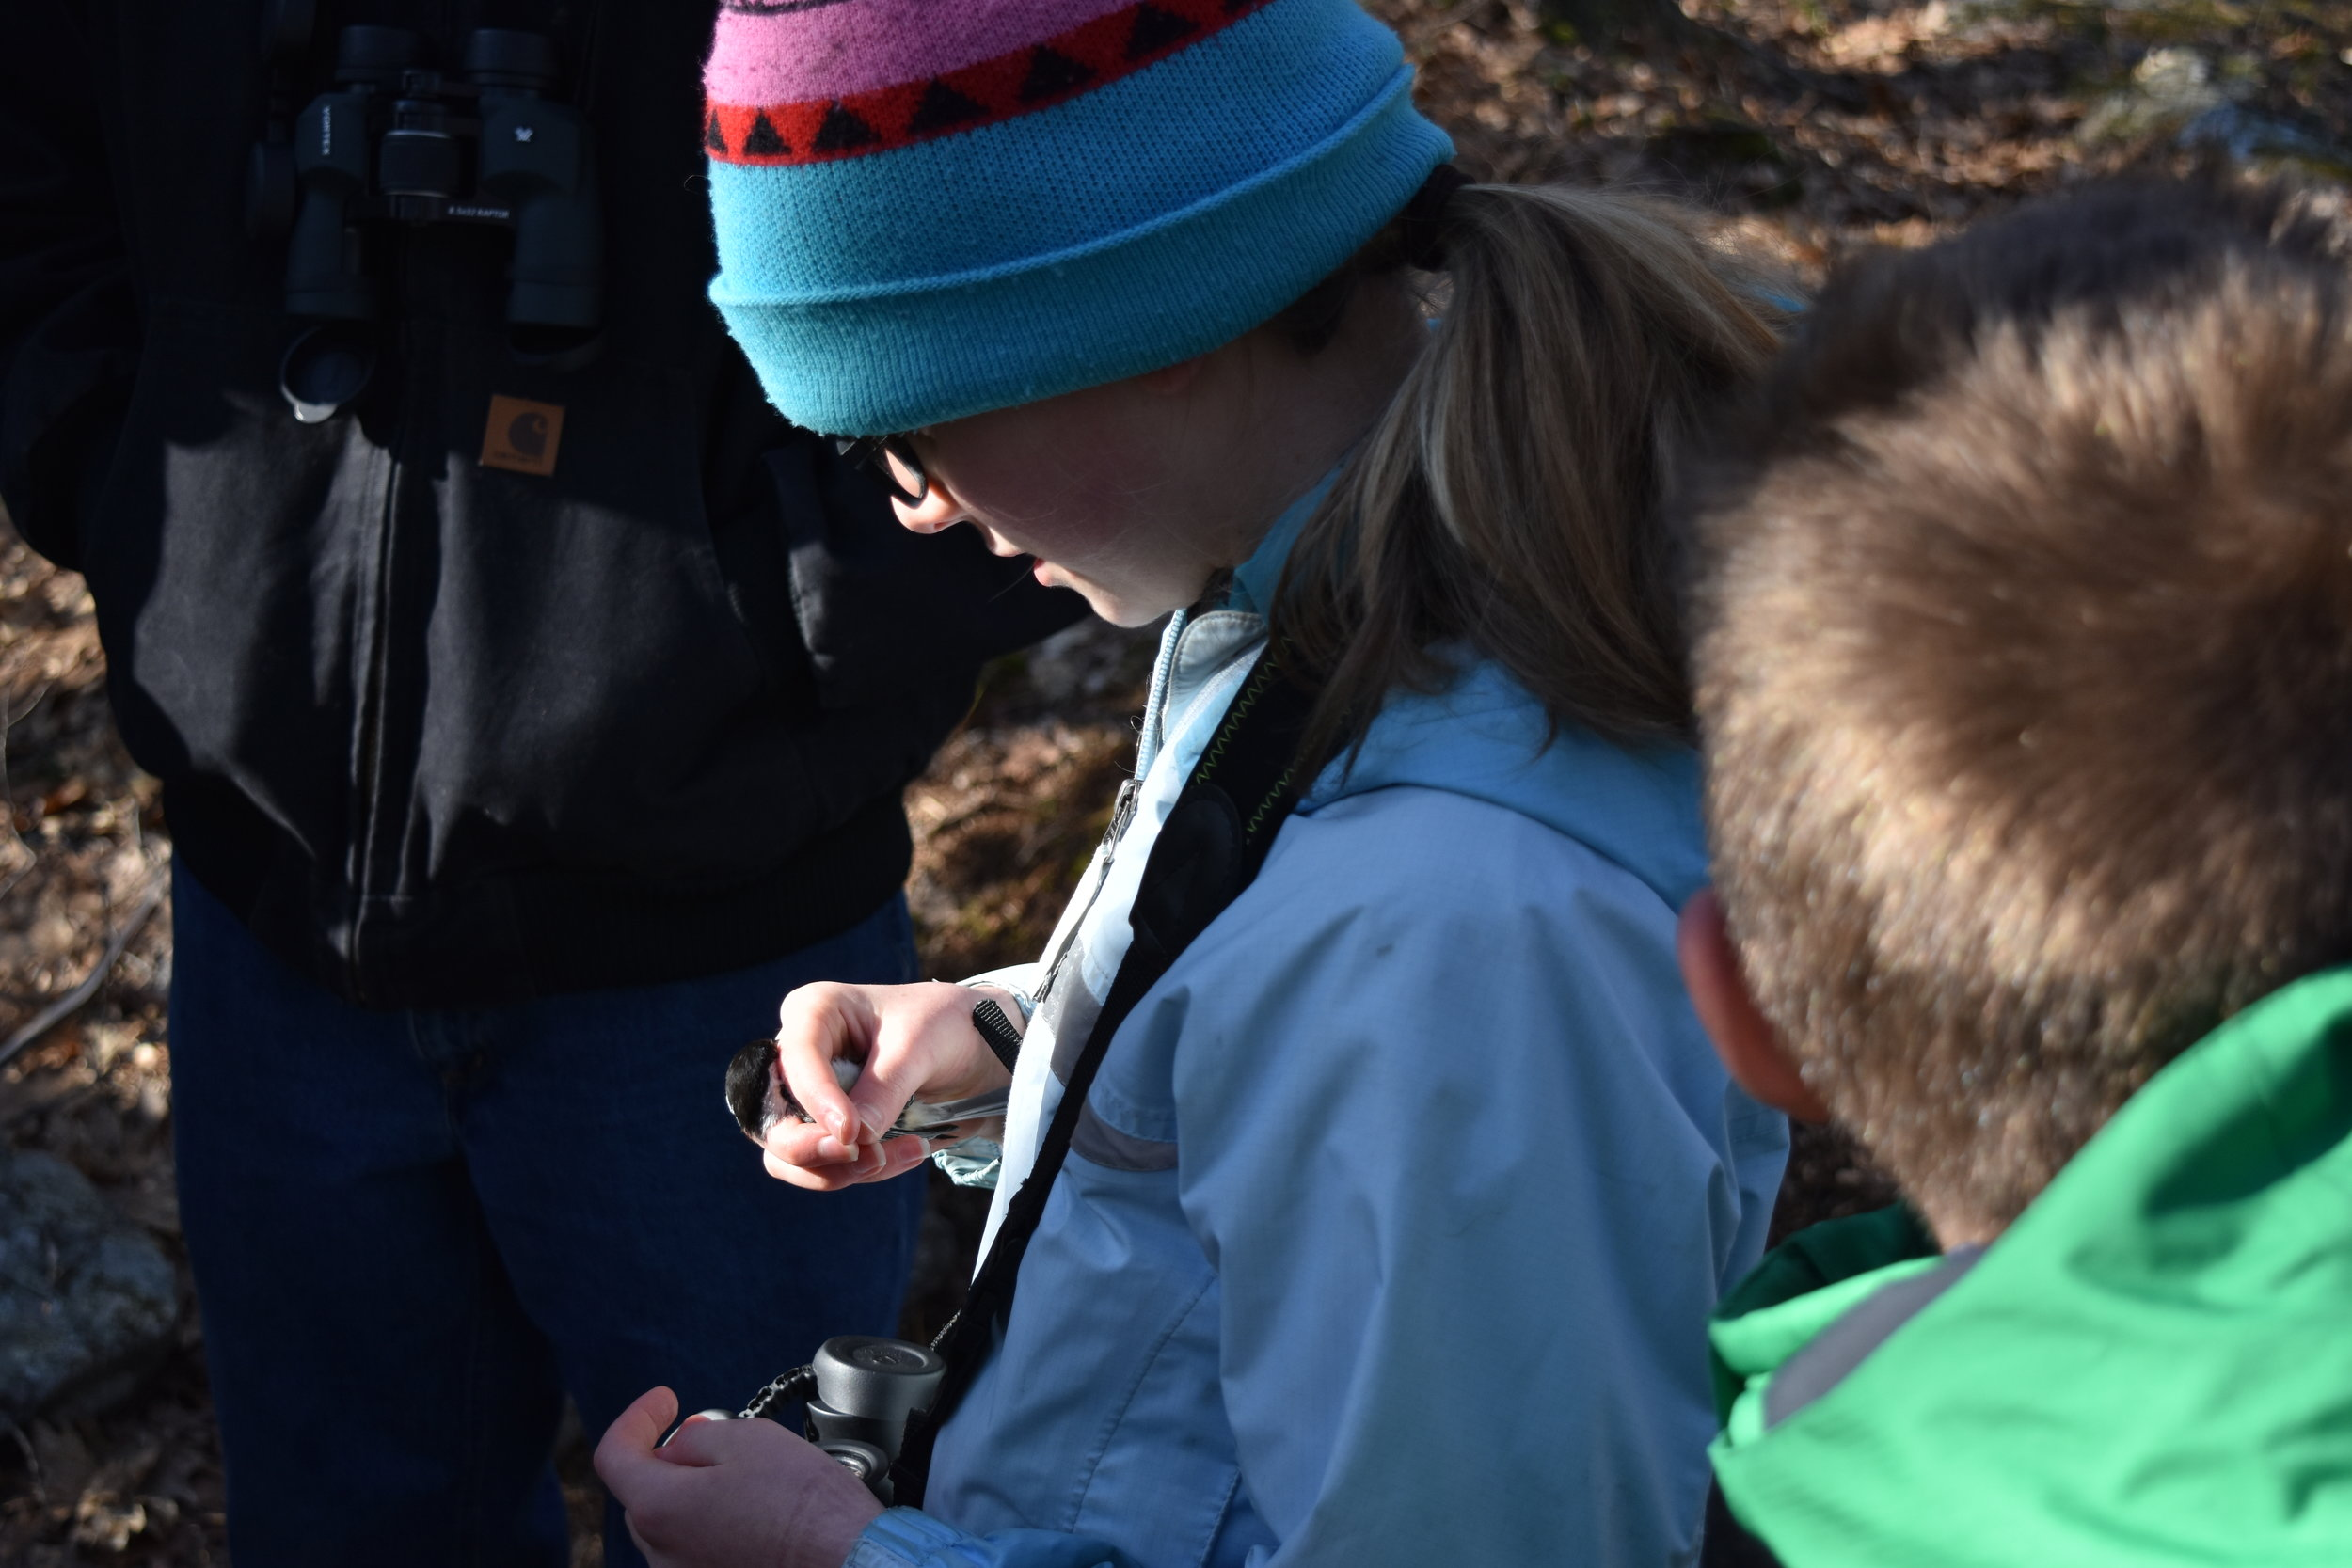 For her hard work, she got to hold and release this chickadee